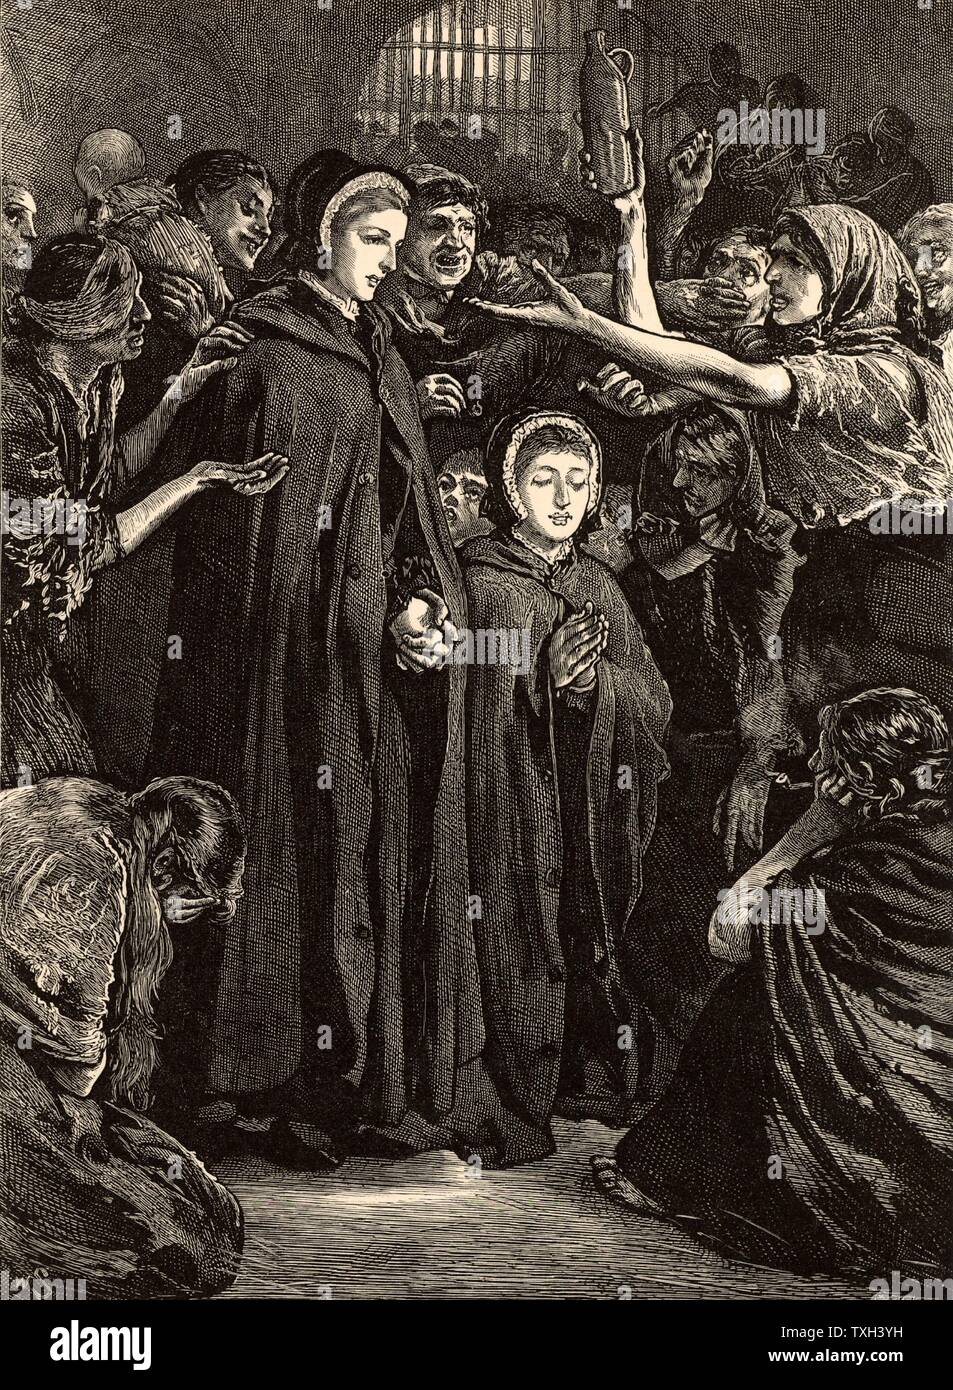 Elizabeth Fry (born Gurney - 1780-1845) English Quaker (Society of Friends) prison reformer, with Anna Buxton, visiting women prisoners in Newgate prison, London, 15 February 1813. Engraving from 'Heroes of Britain in Peace and War' by Edwin Hodder (London, c1880). - Stock Image